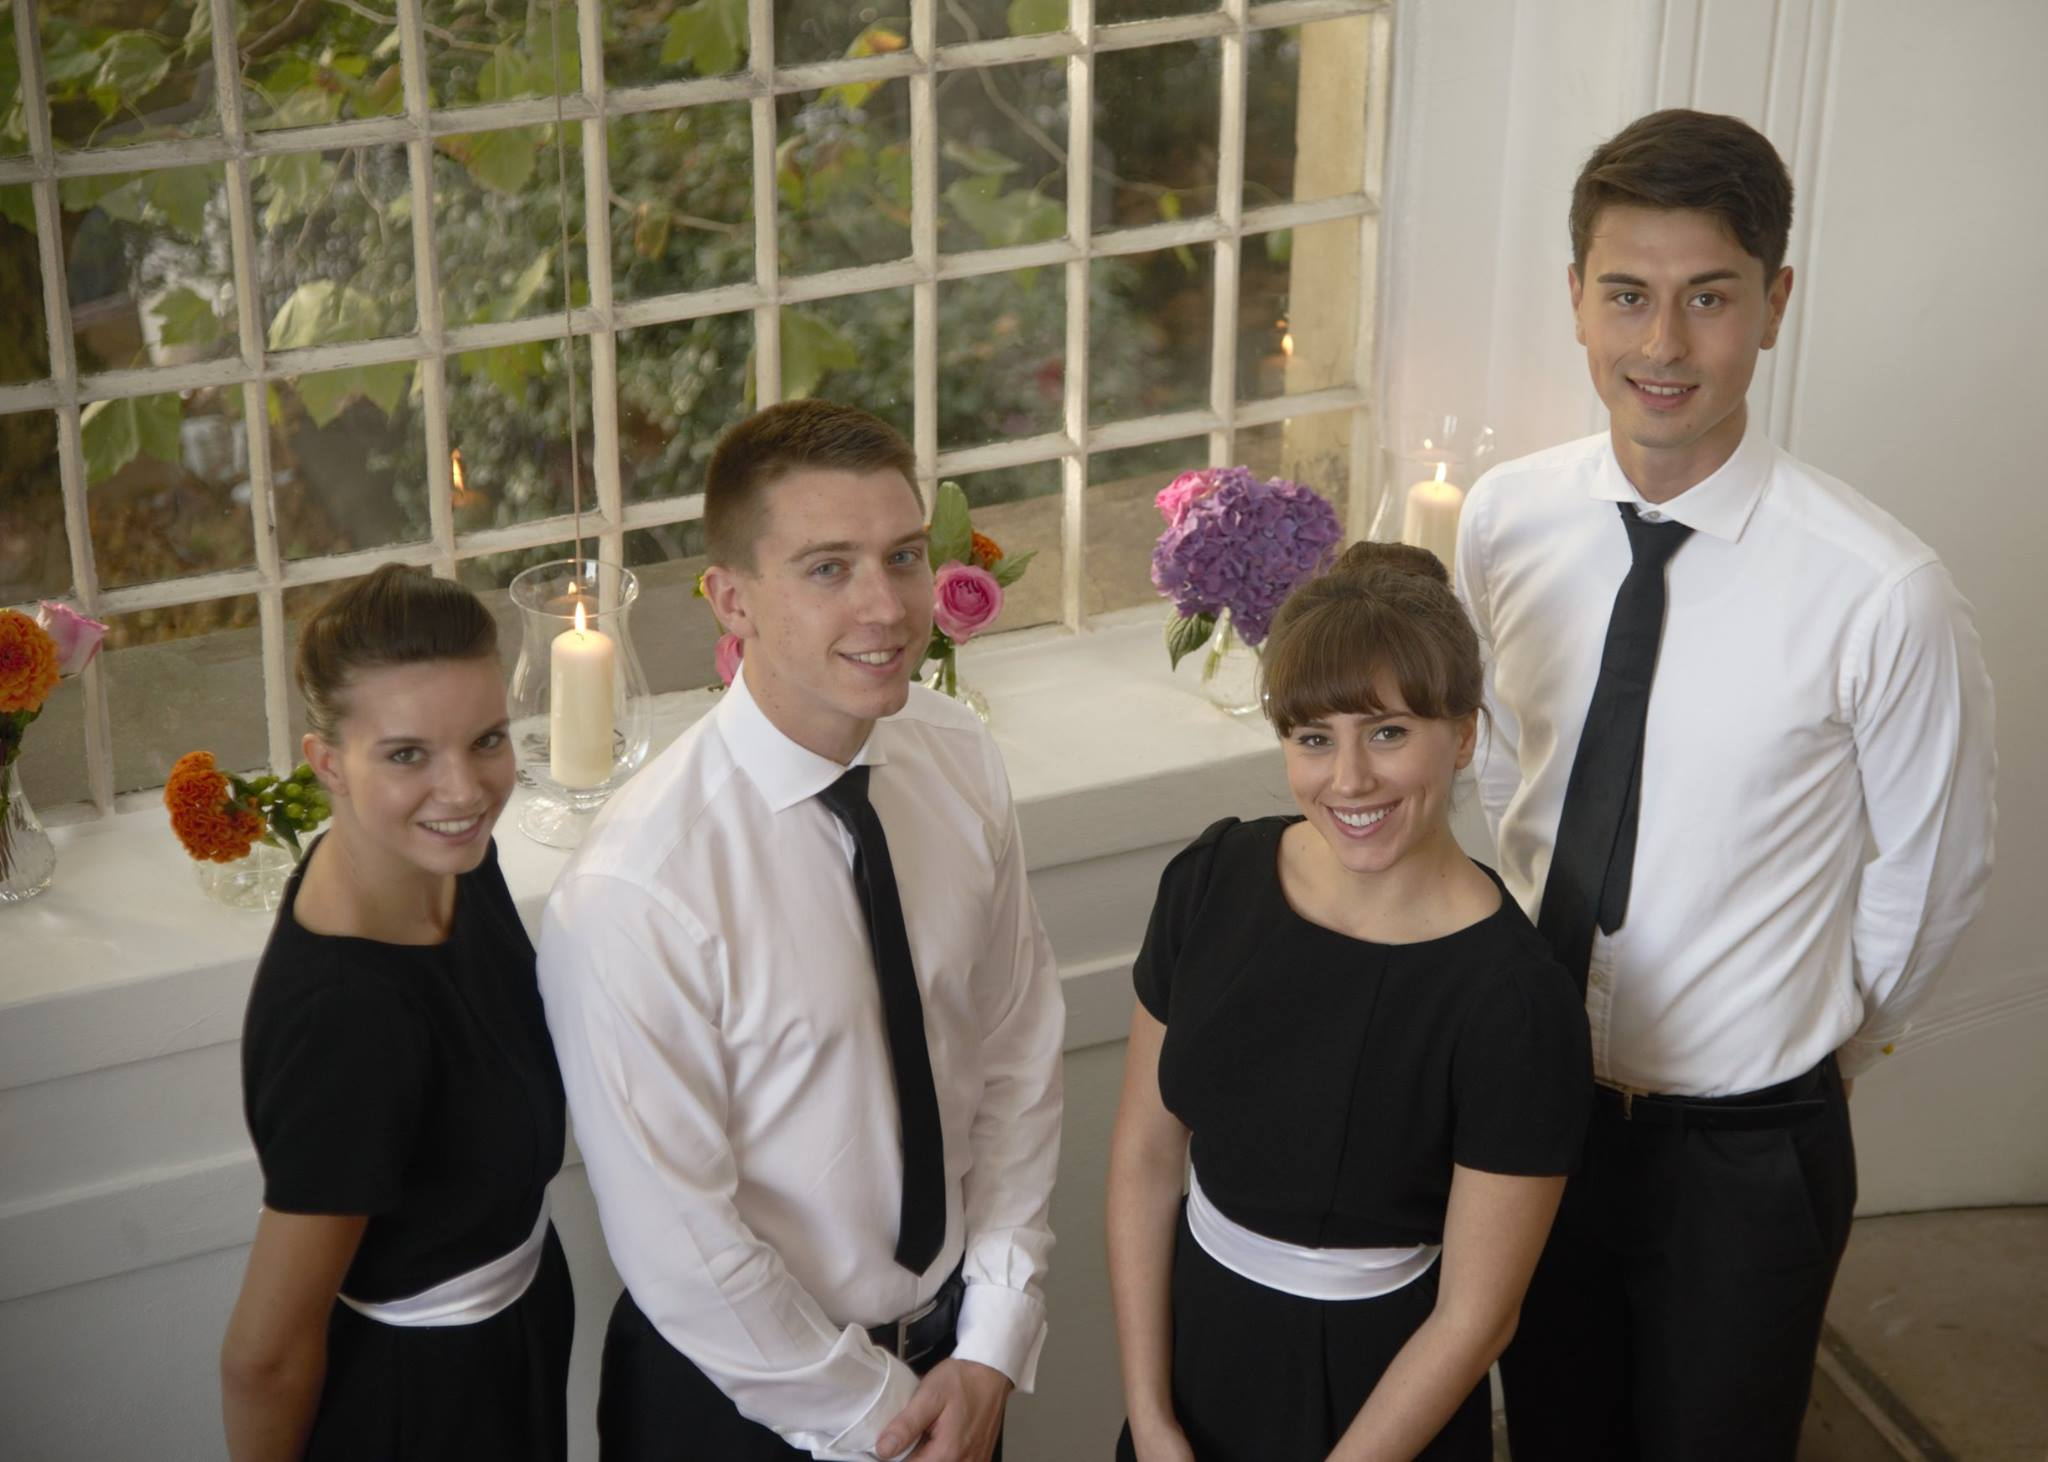 re hospitality student and temporary jobs including agency work re hospitality supplies staff to some of the finest events companies caterers and venues all over london you could be working at the latest film premiere